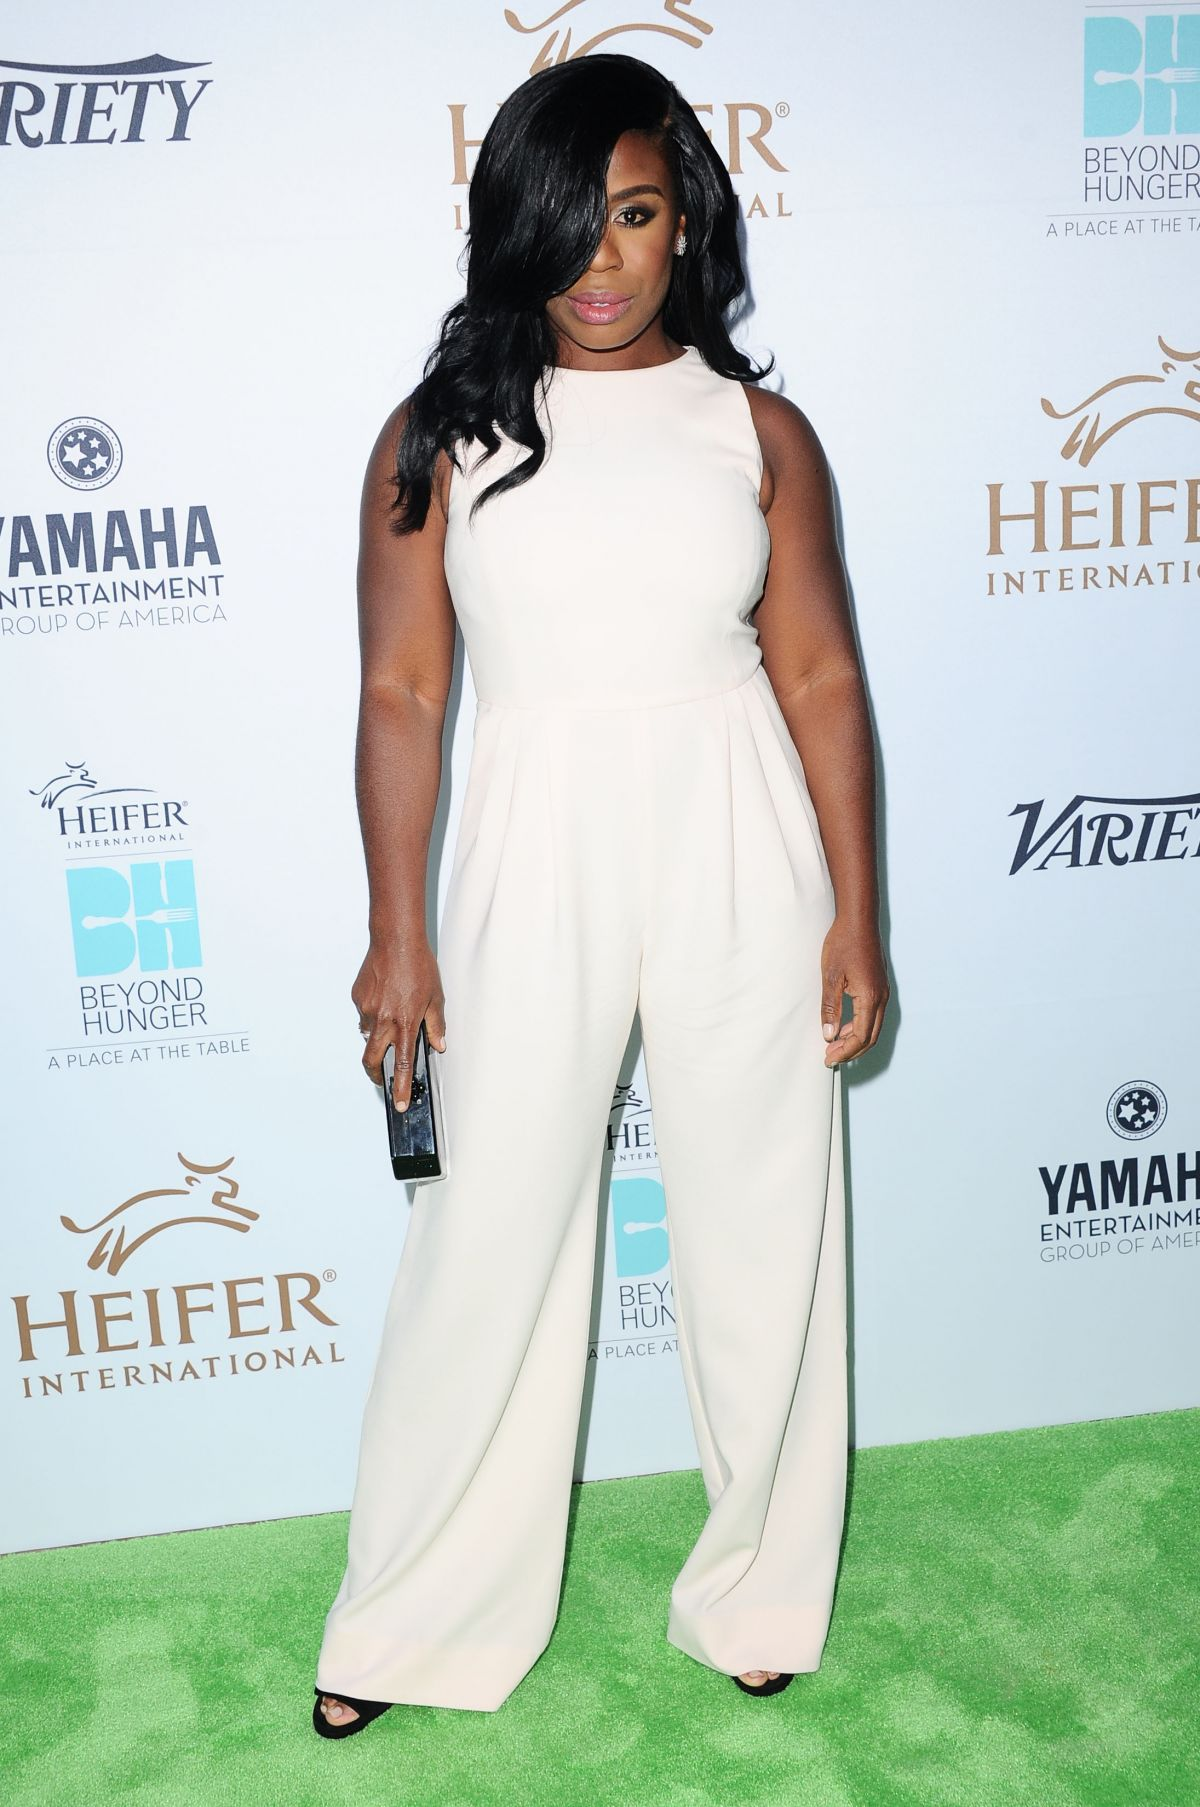 UZO ADUBA at Heifer International's 4th Annual Beyon Hunger Gala 09/18/2015